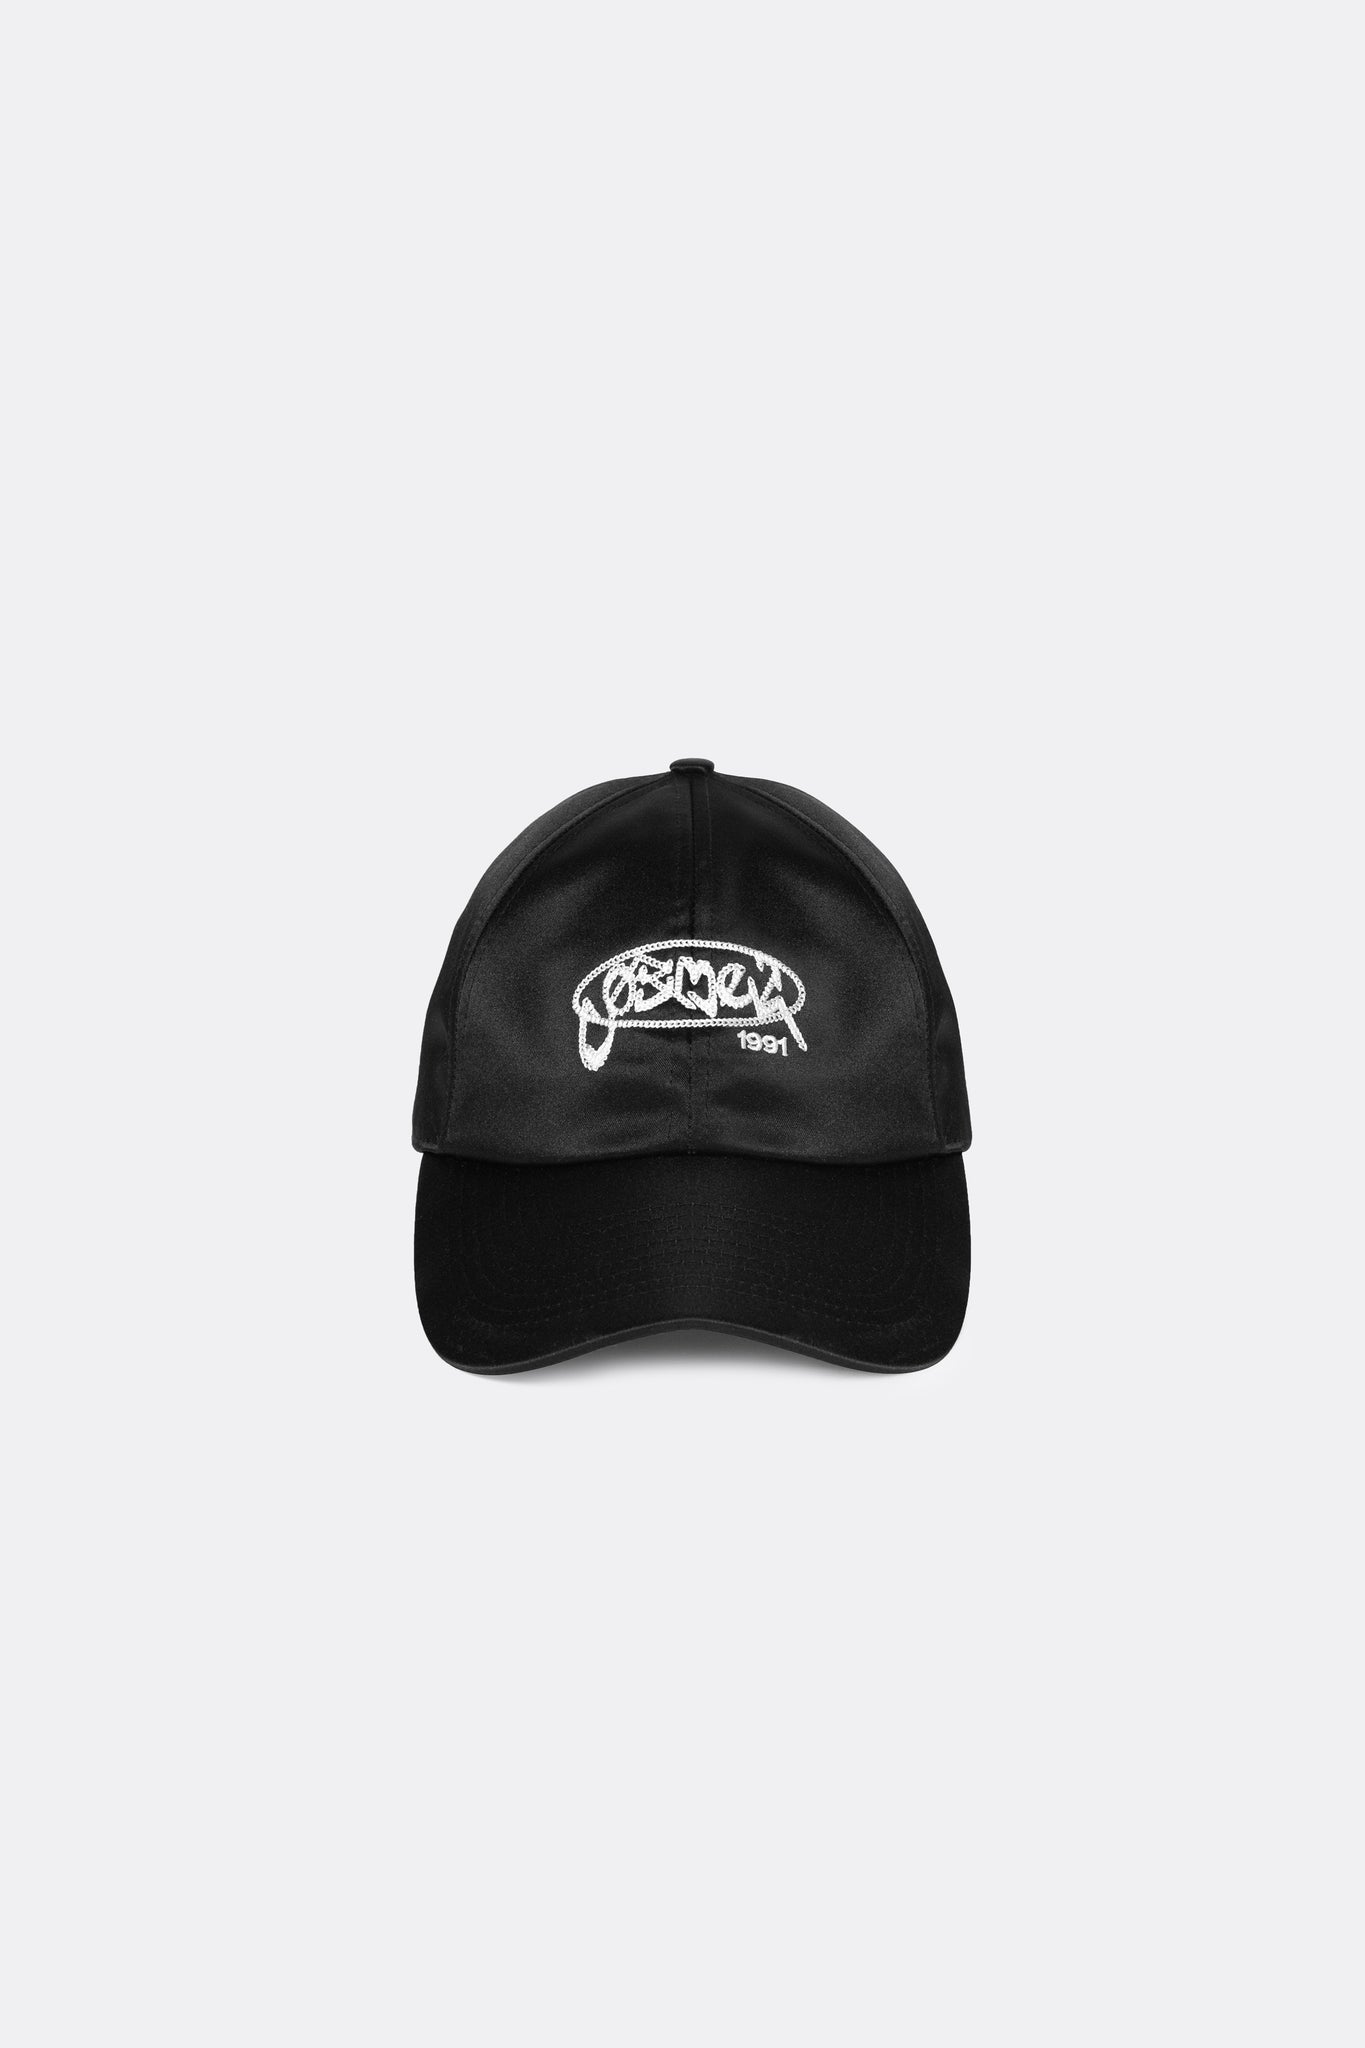 2021 Sunrise Cap